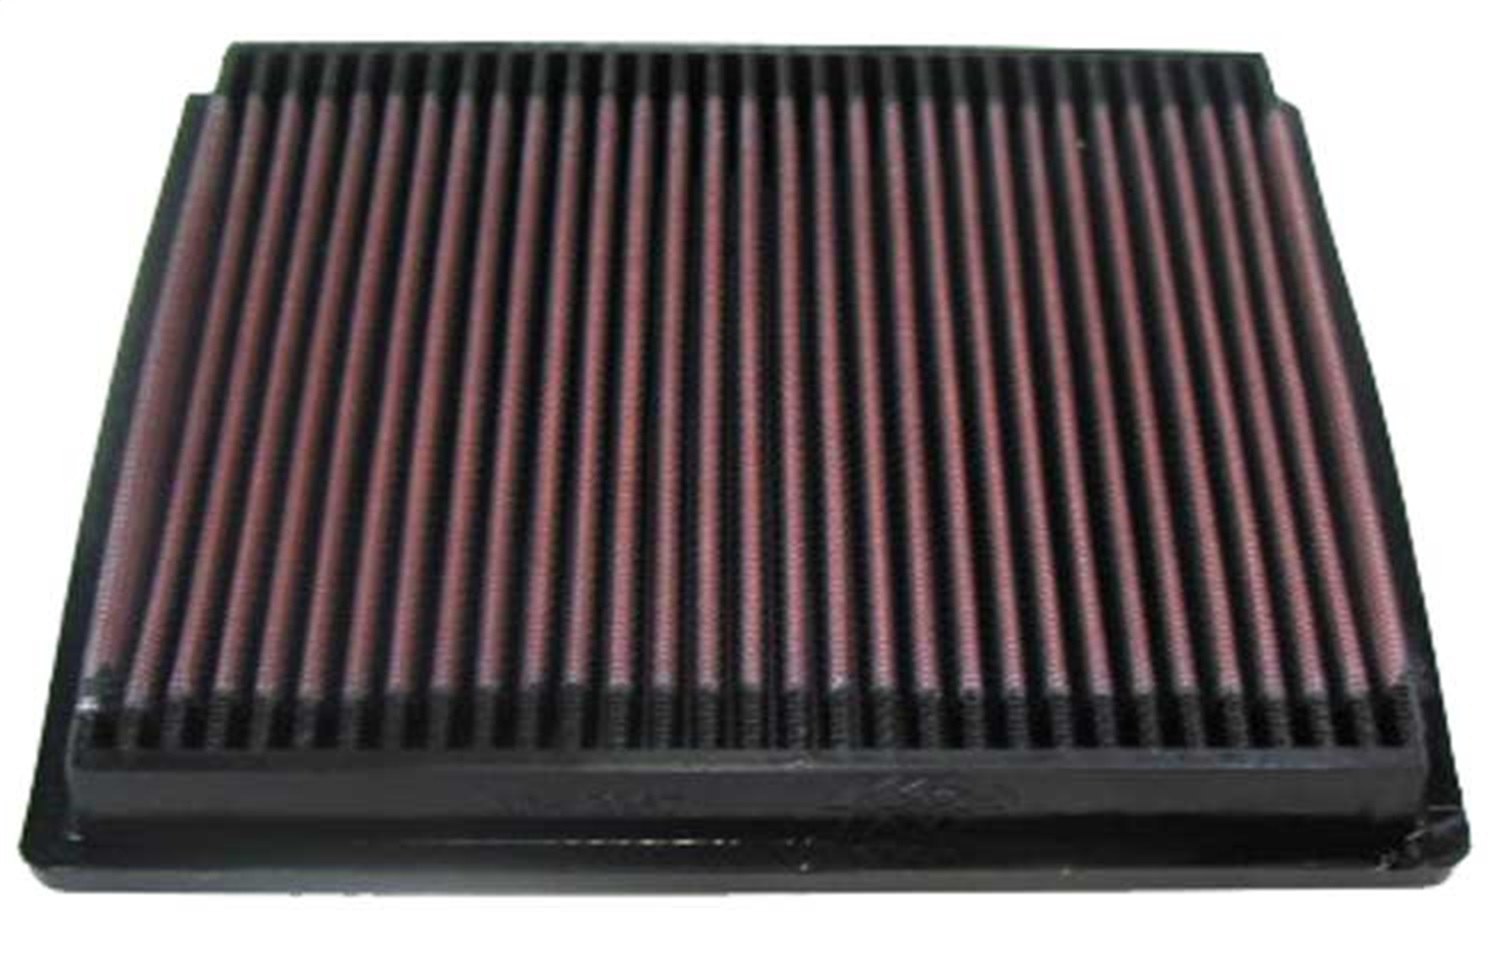 K&N Filters 33-2067 Air Filter Fits 95-00 Breeze Cirrus Sebring Stratus 33-2067